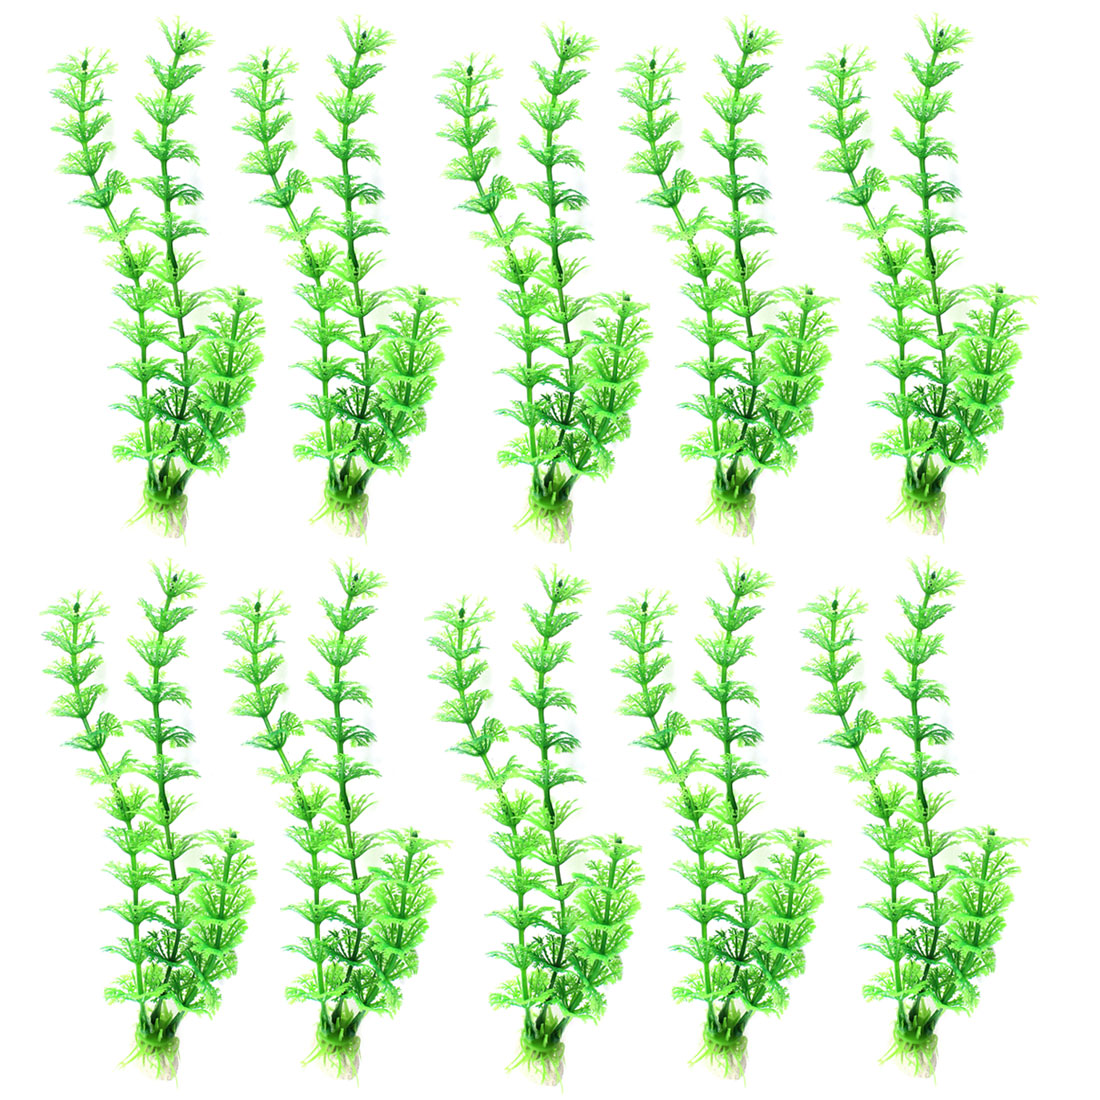 "Aquarium Fish Tank Landscaping Artificial Emulational Underwater Water Plant Grass Ornament Green 8.7"" Height 10Pcs"